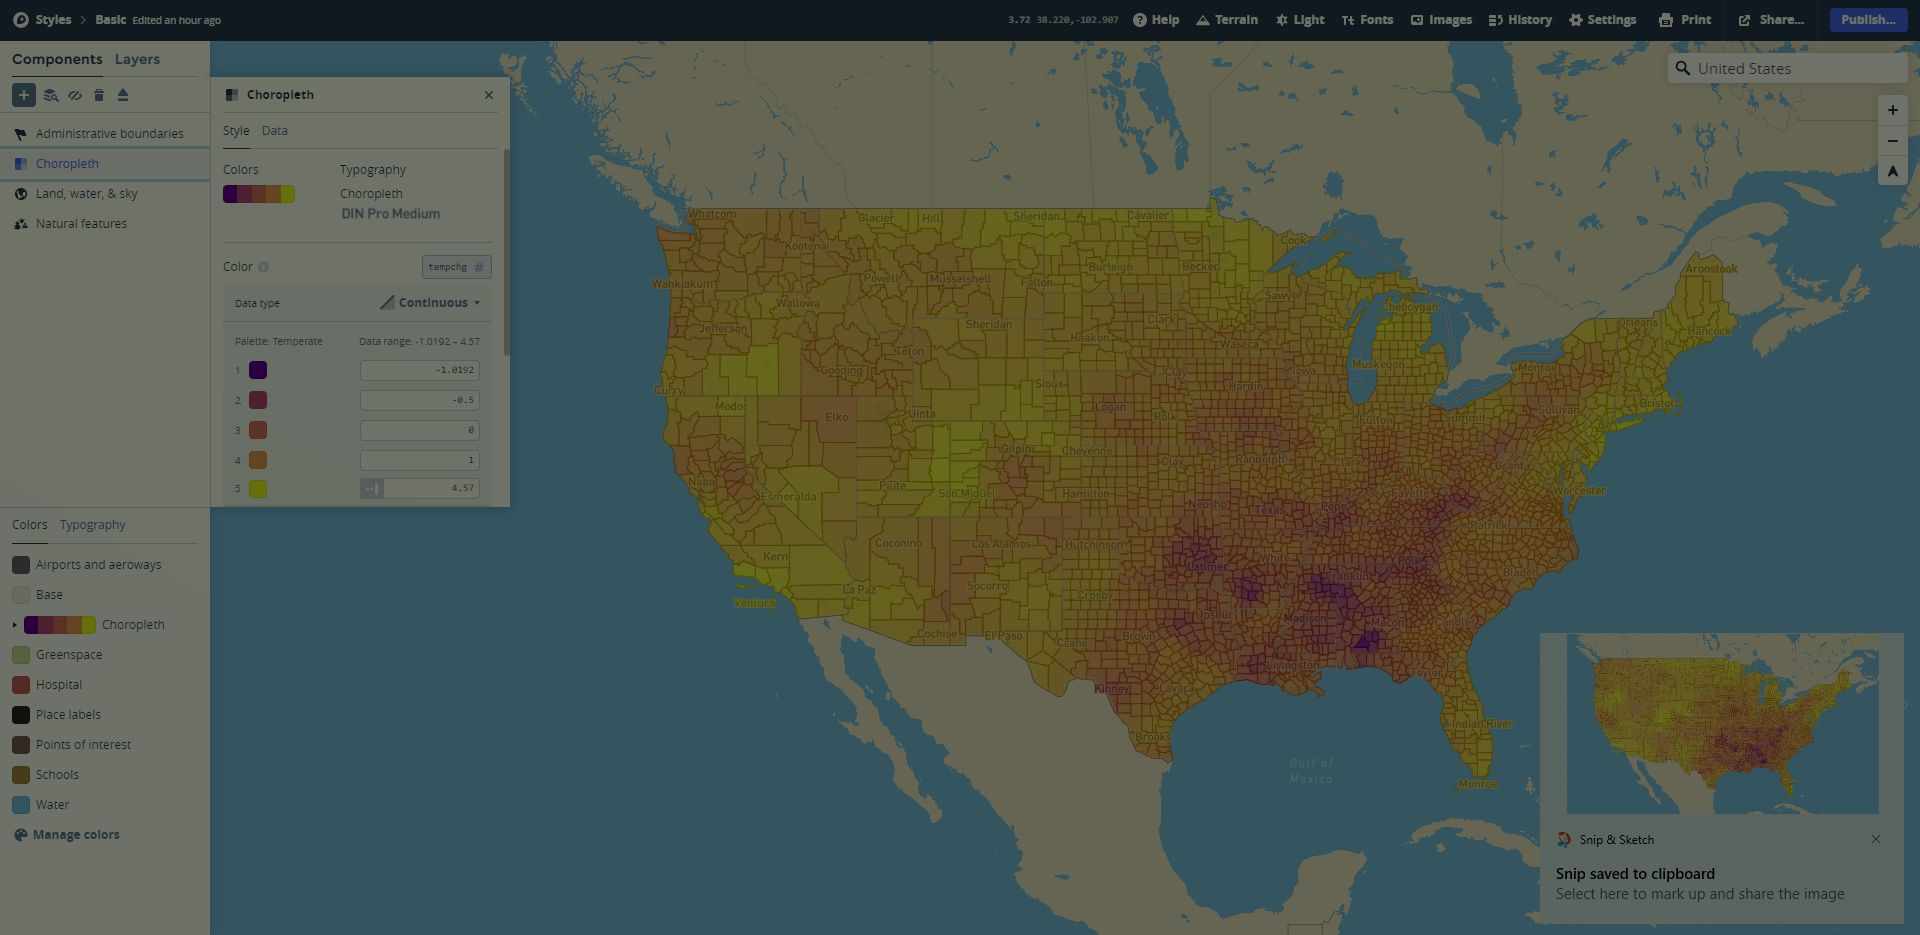 /create-a-data-visualization-map-using-mapbox-without-no-coding-xr40337m feature image